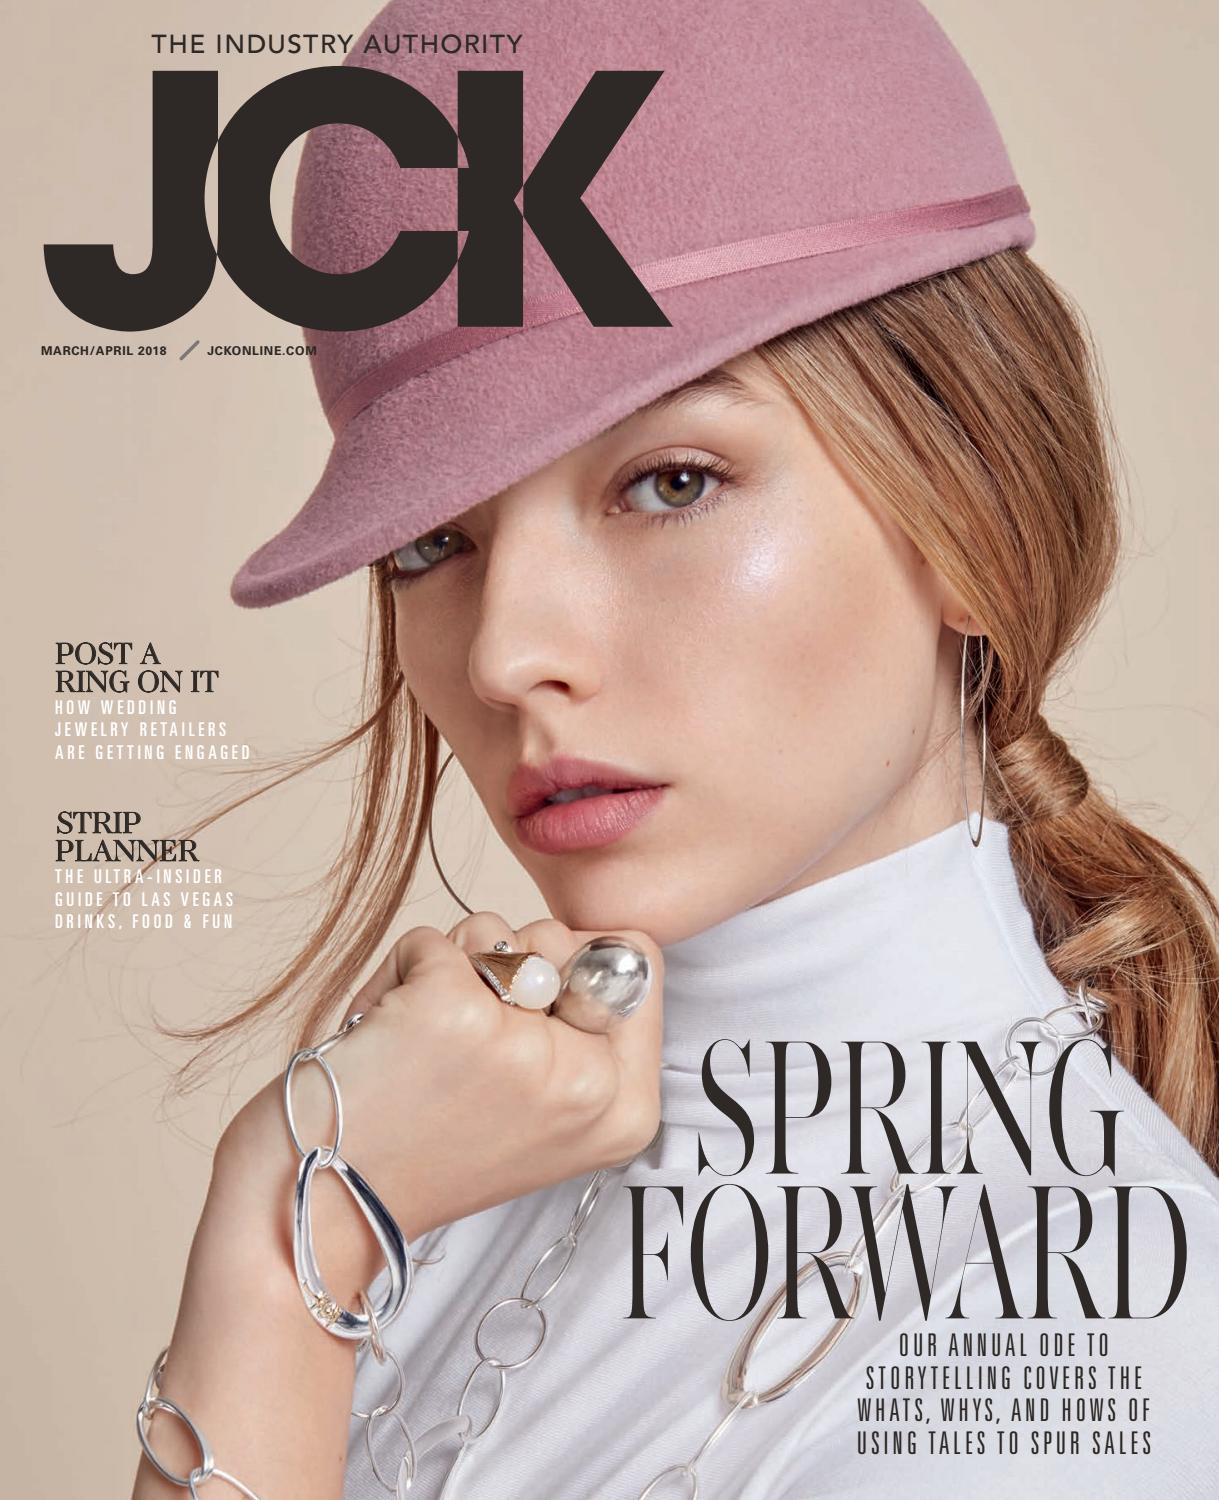 JCK March April 2018 Issue by JCK Magazine - issuu 4e97b80d89bf